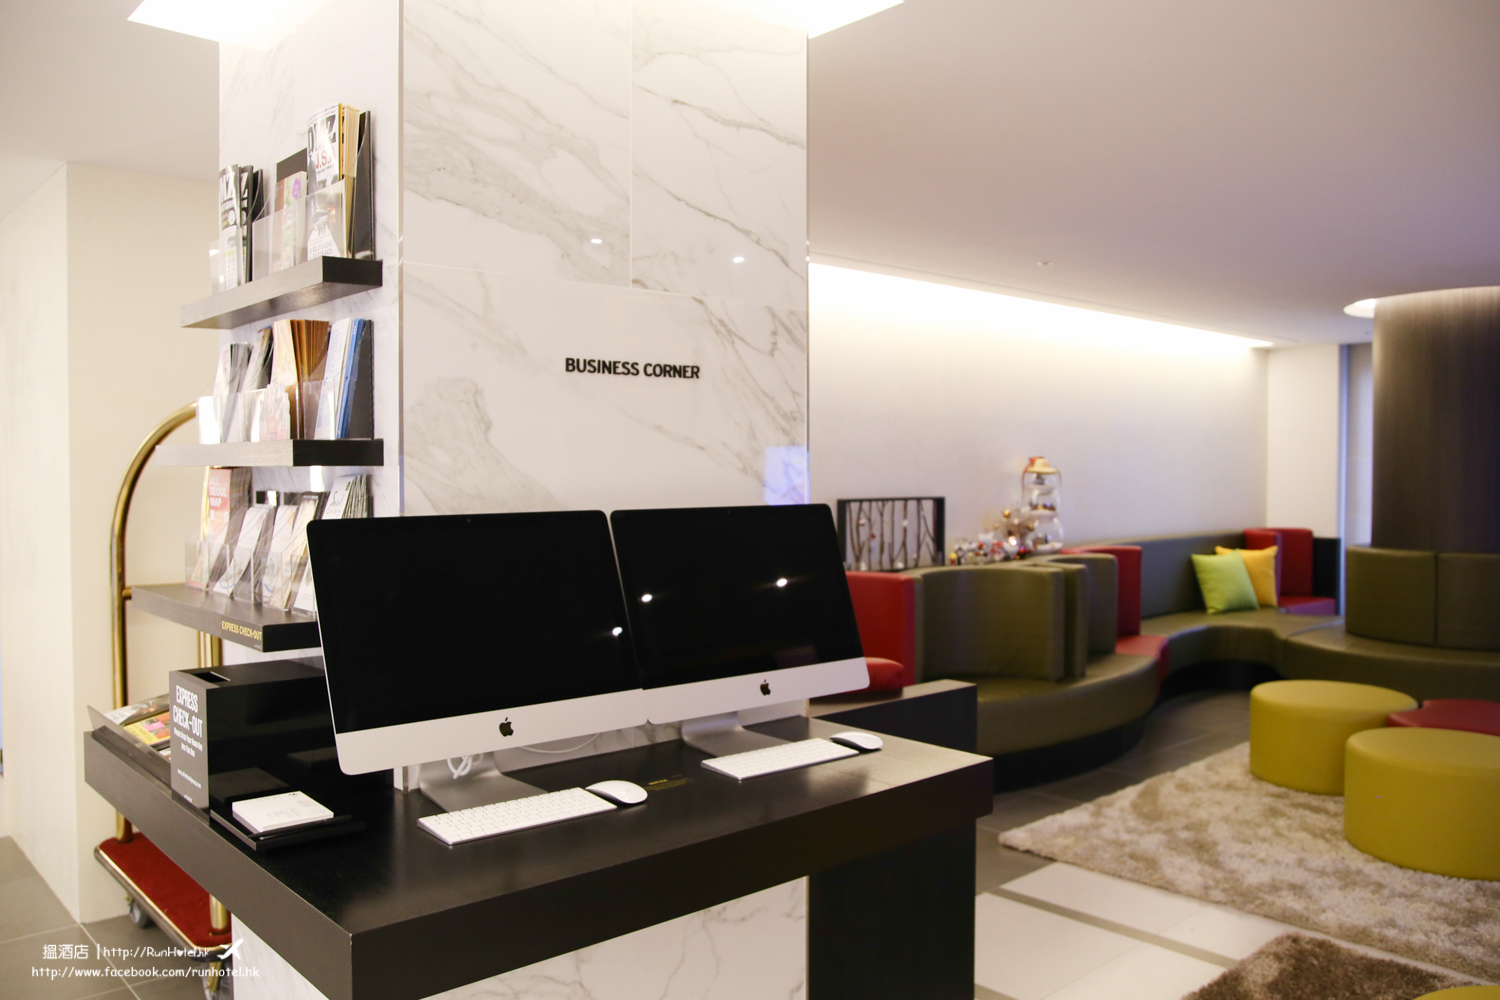 a-first-myeongdong-hotel-27